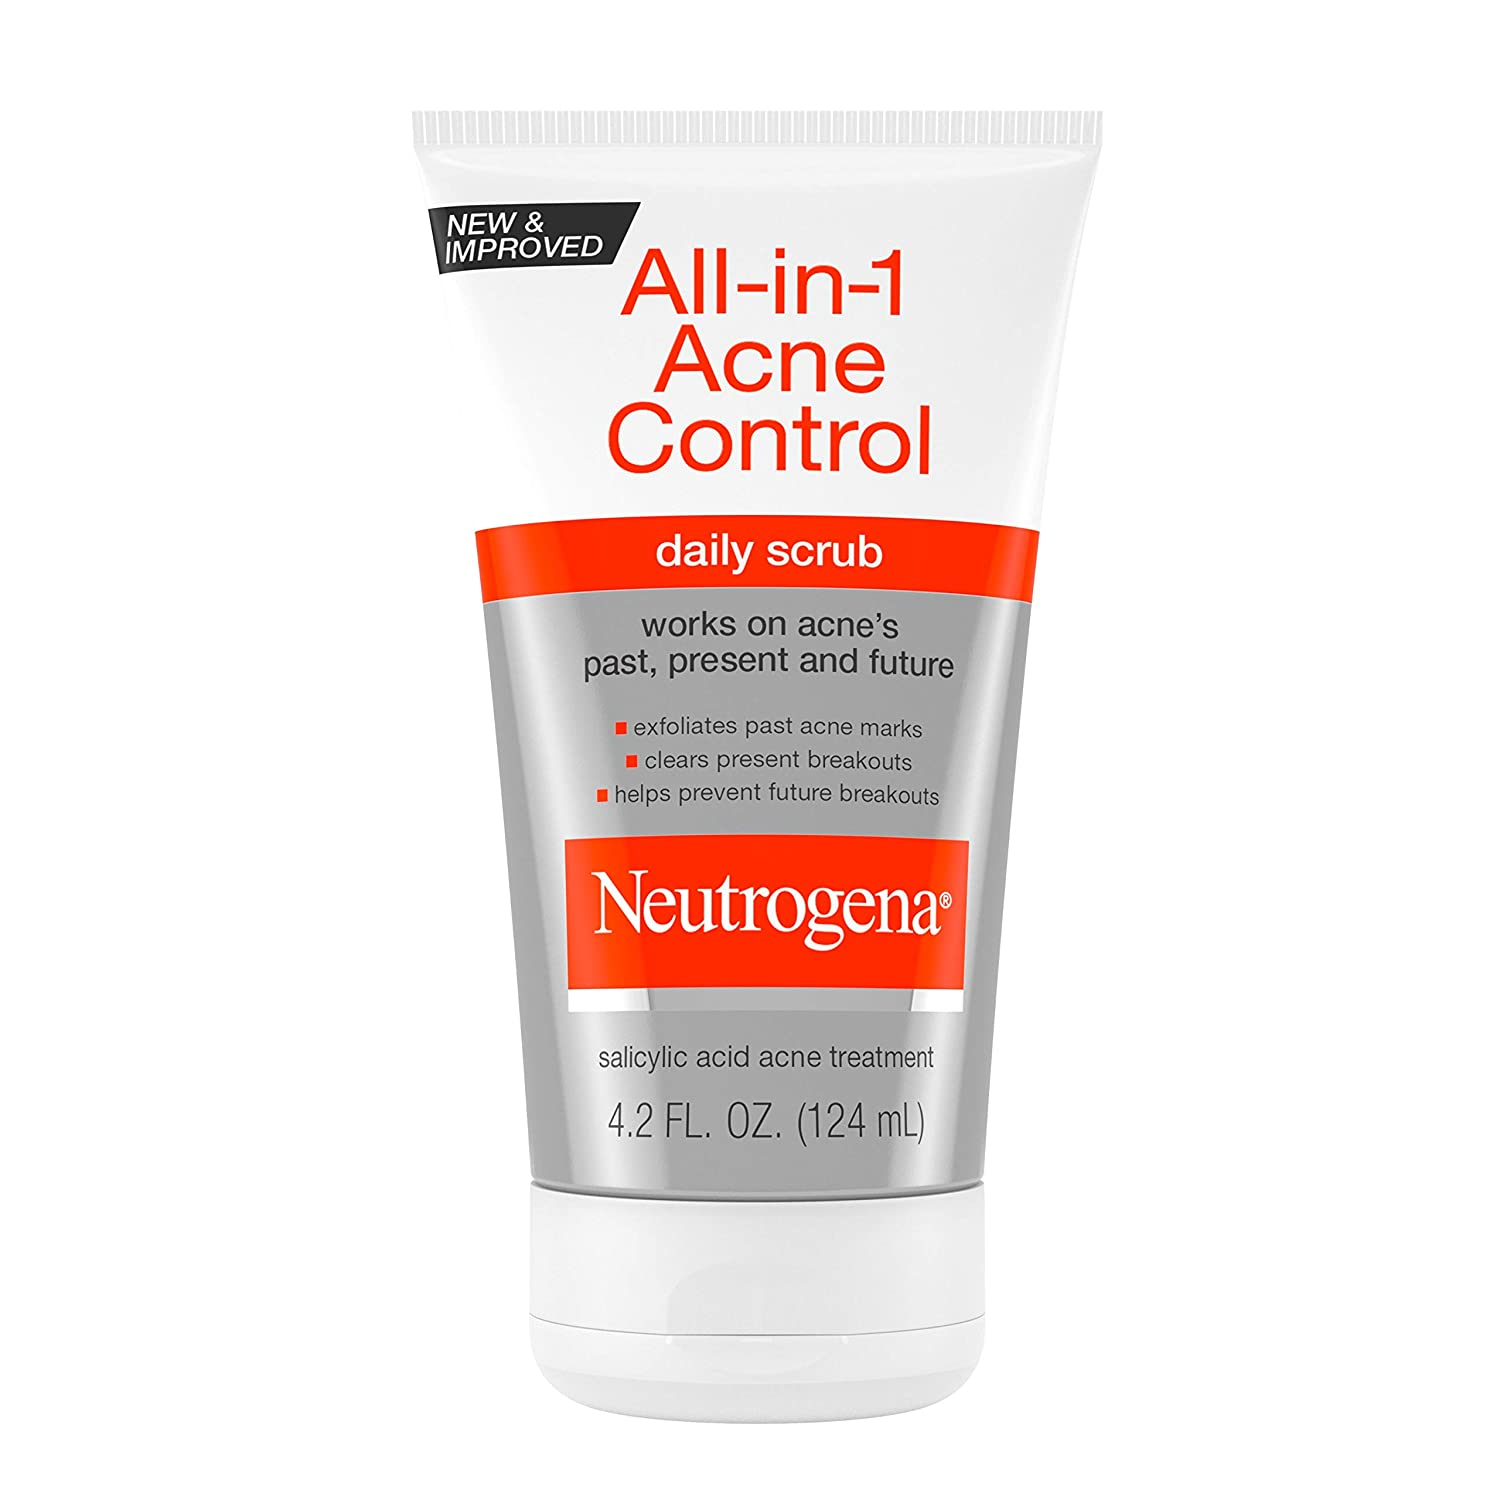 Neutrogena All-In-1 Acne Control Daily Face Scrub to Exfoliate and Treat Acne, Salicylic Acid Acne Treatment, 4.2 fl. oz